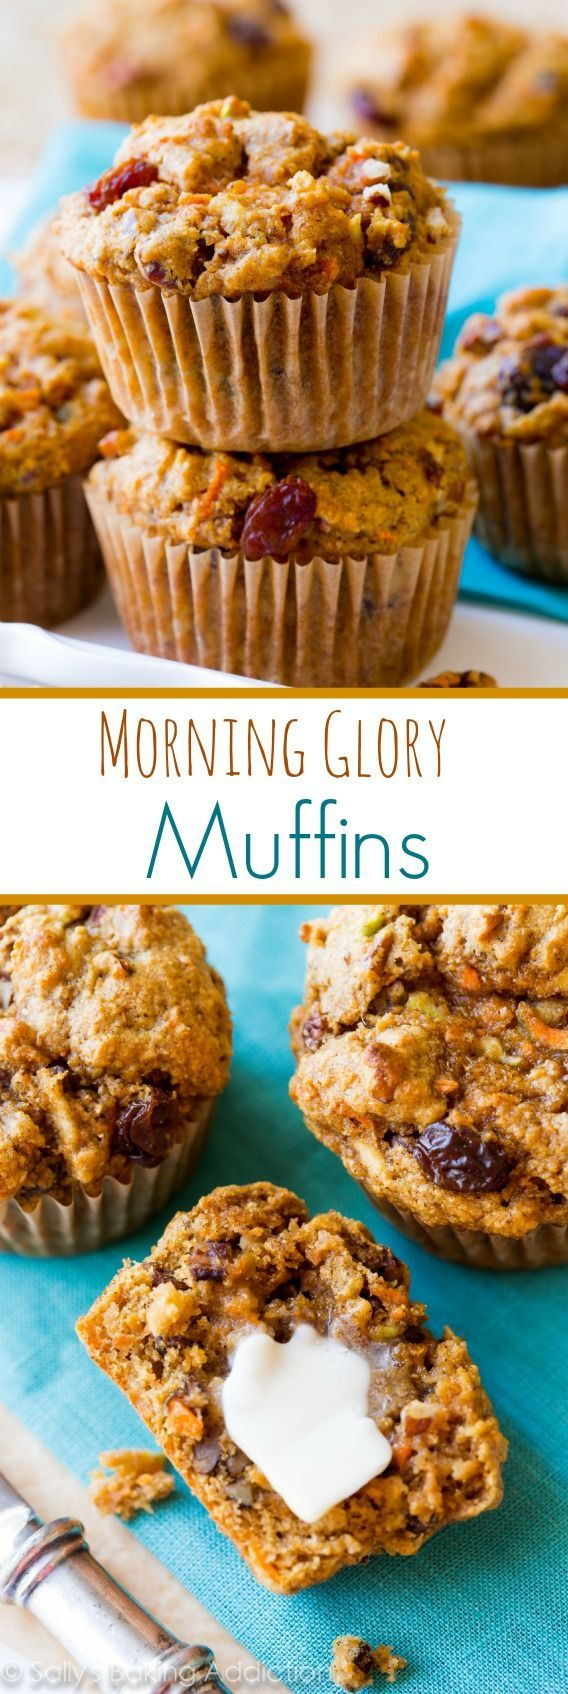 Simple Wholesome And Hearty Morning Glory Muffins Packed